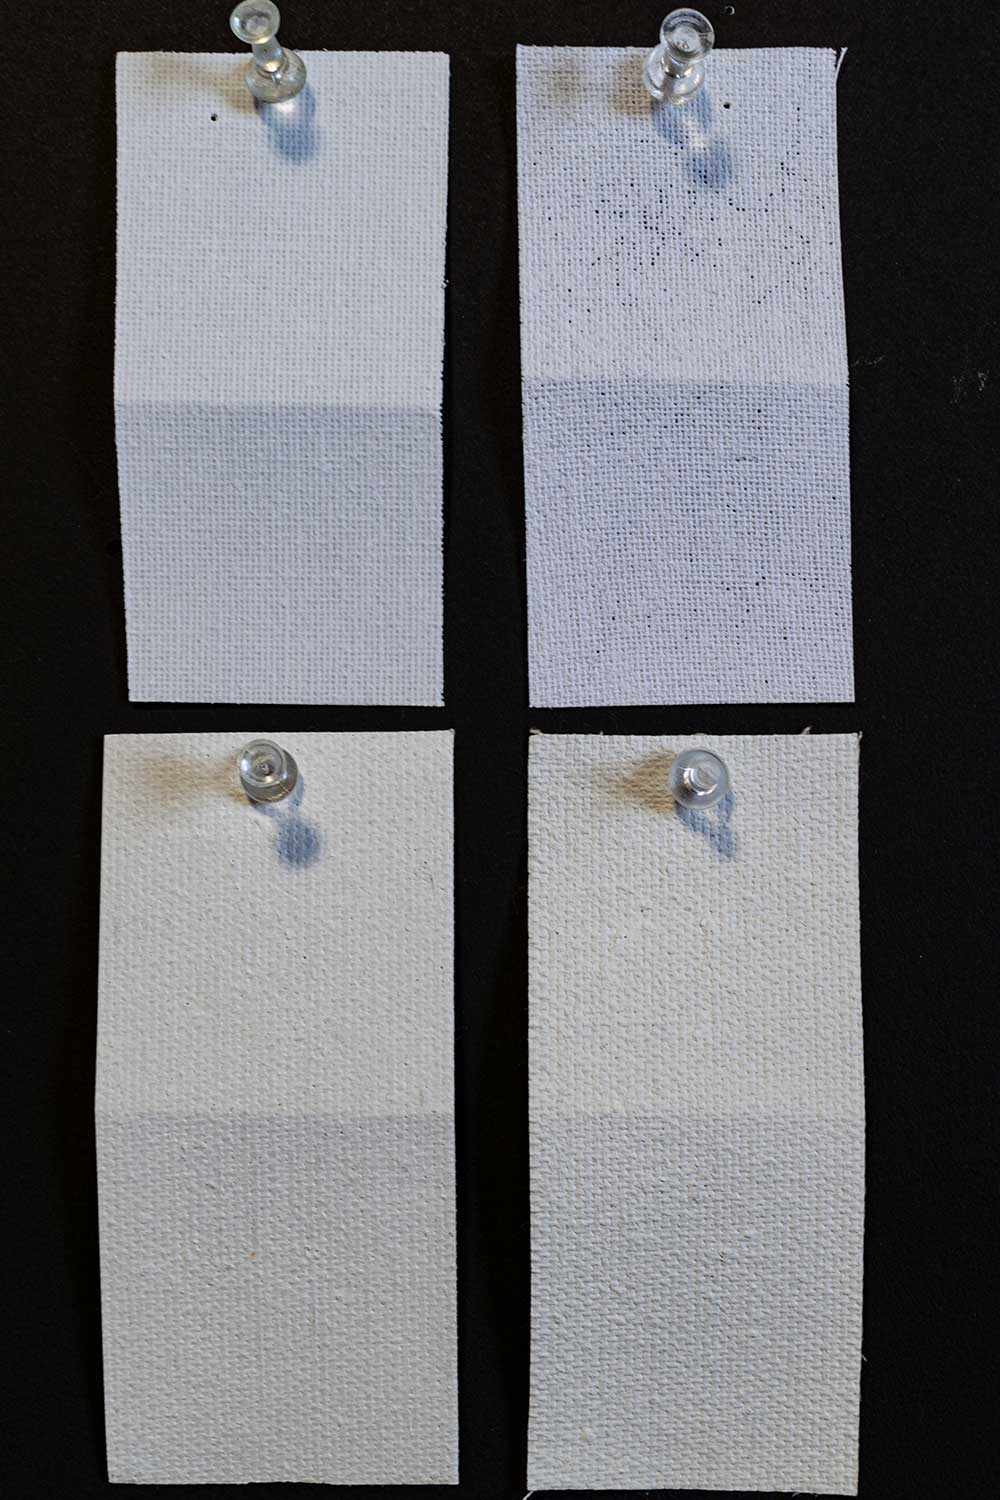 four canvas swatches from a water washing test. the discount store swatch shows less primer and pinholes after washing, the tri-art one shows negligible change.